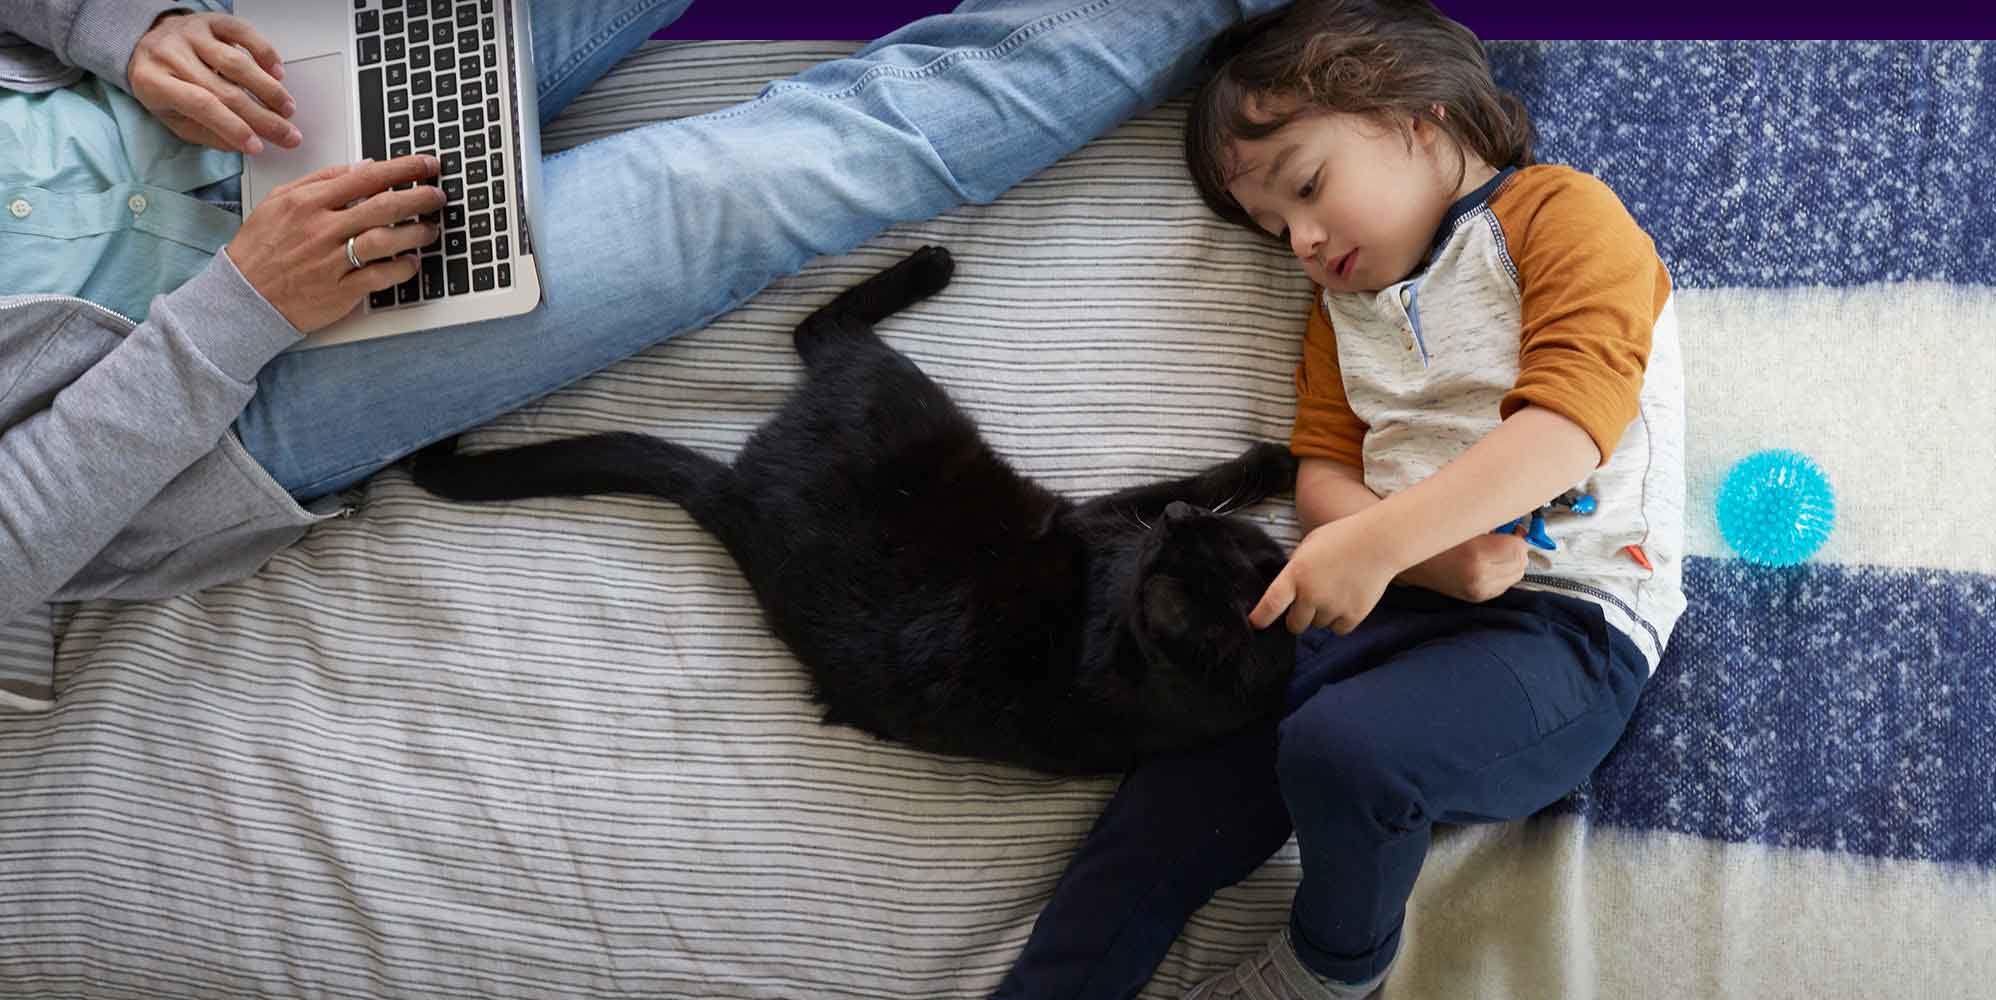 A child laying on the bed with their black cat.